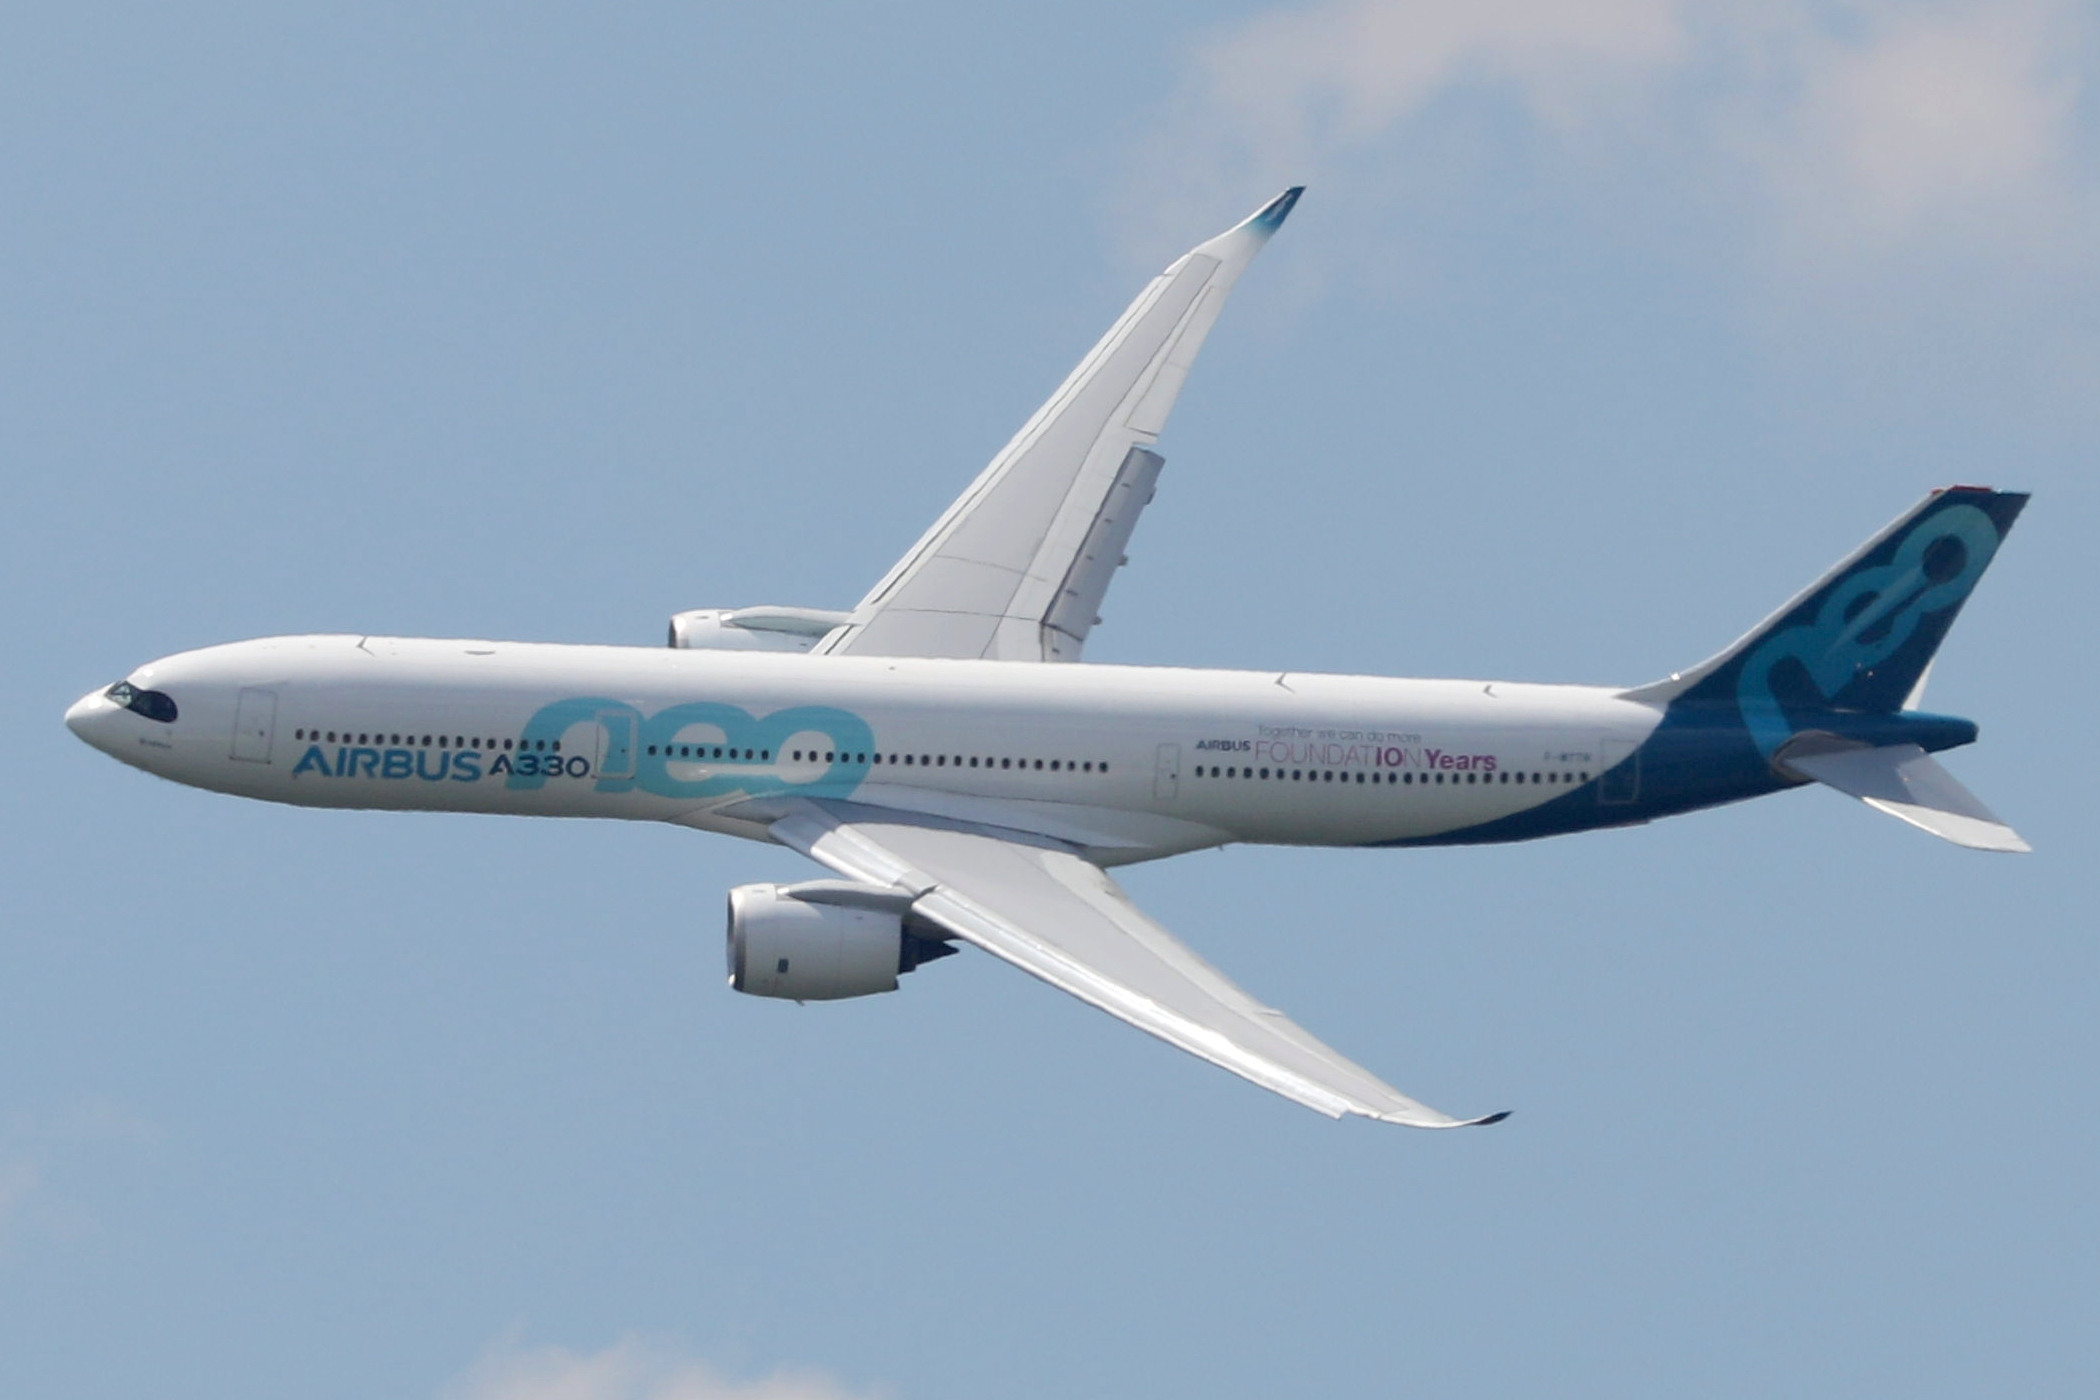 Airbus A330neo - Wikipedia